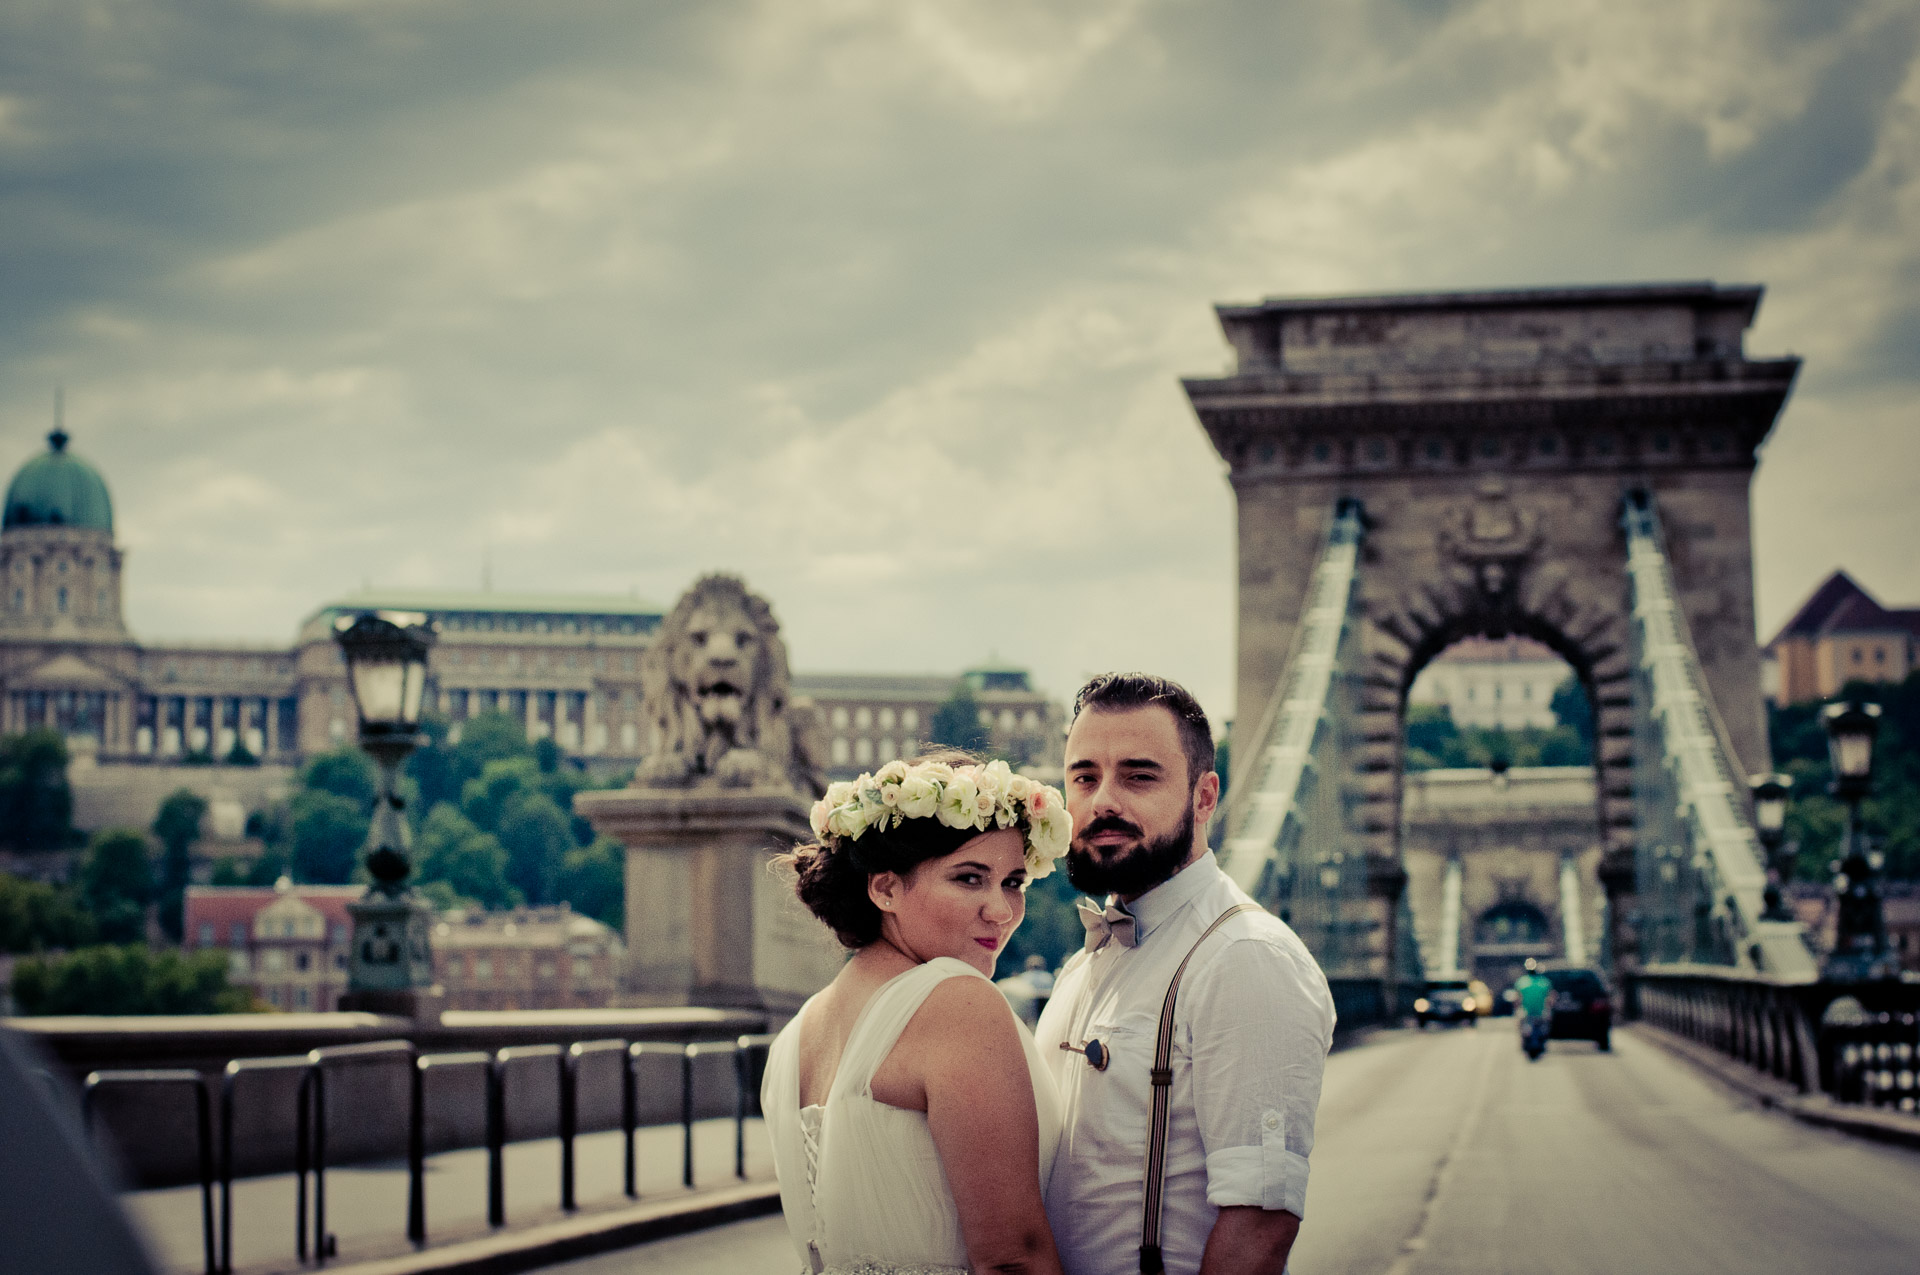 Best elopement and honeymoon place in Europe is Budapest city - super romantic backdrop with Chain brigde